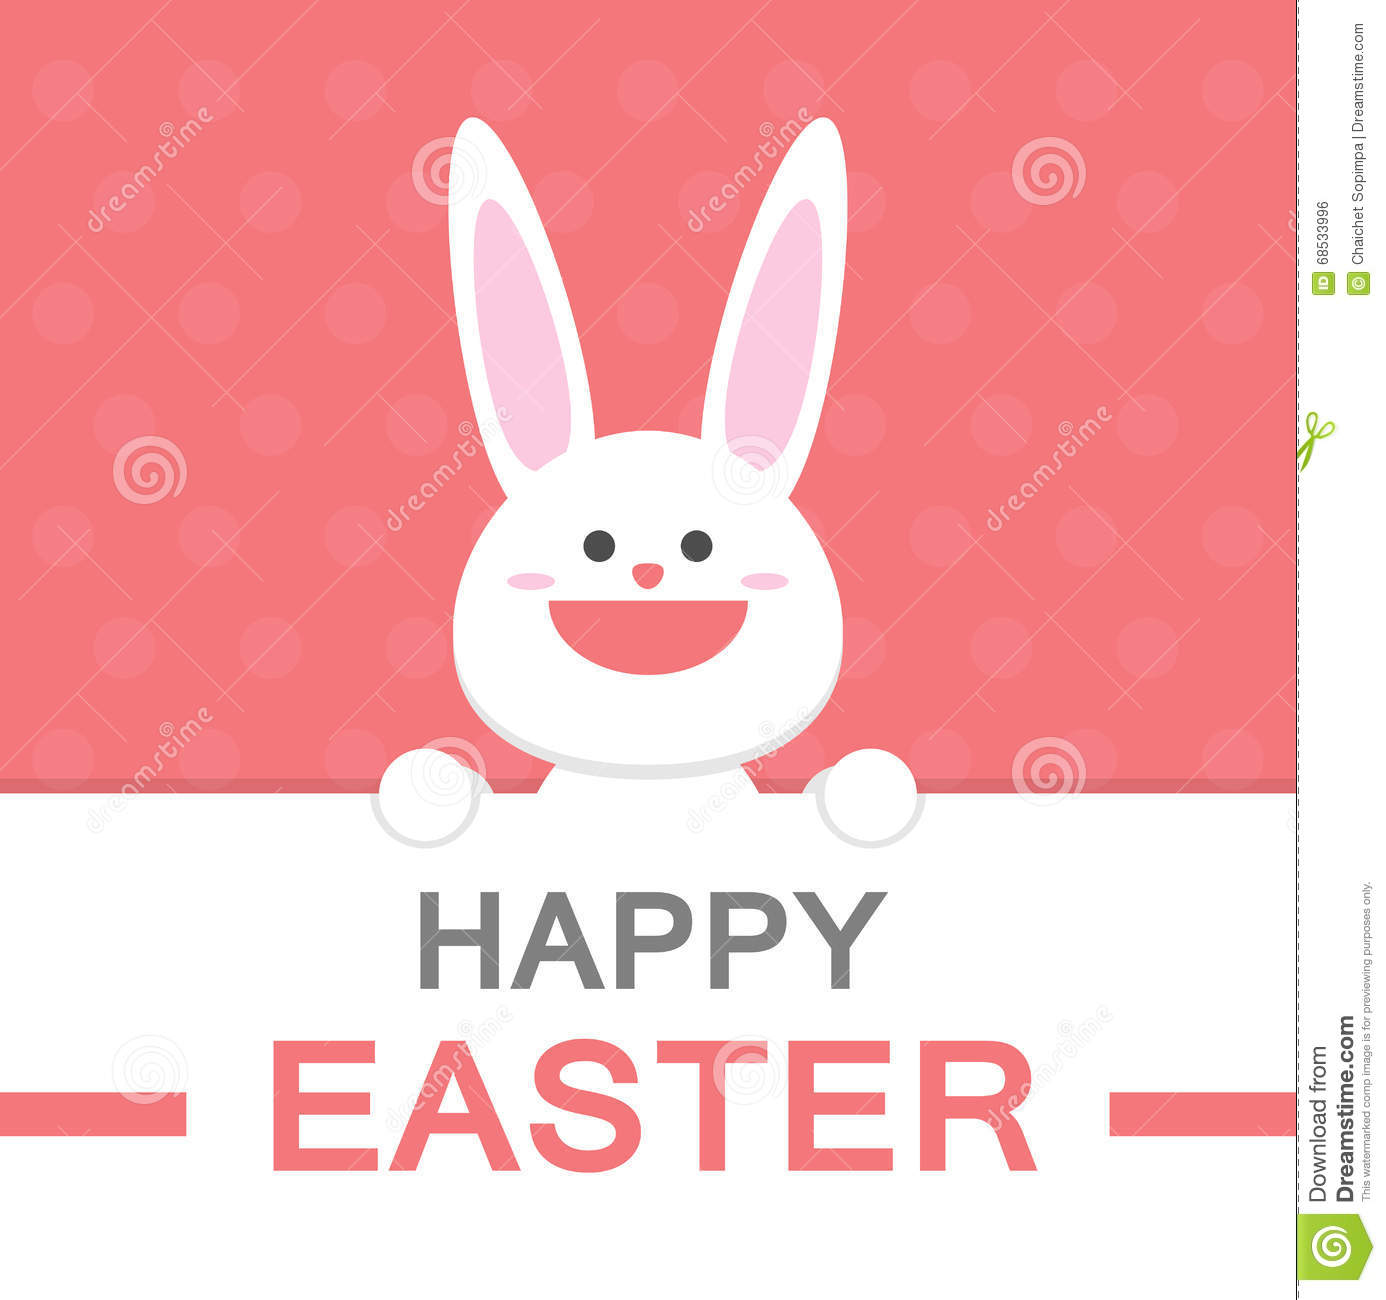 Happy Easter Day Smile Bunny Cartoon Vector Greeting Card Template – Easter Greeting Card Template